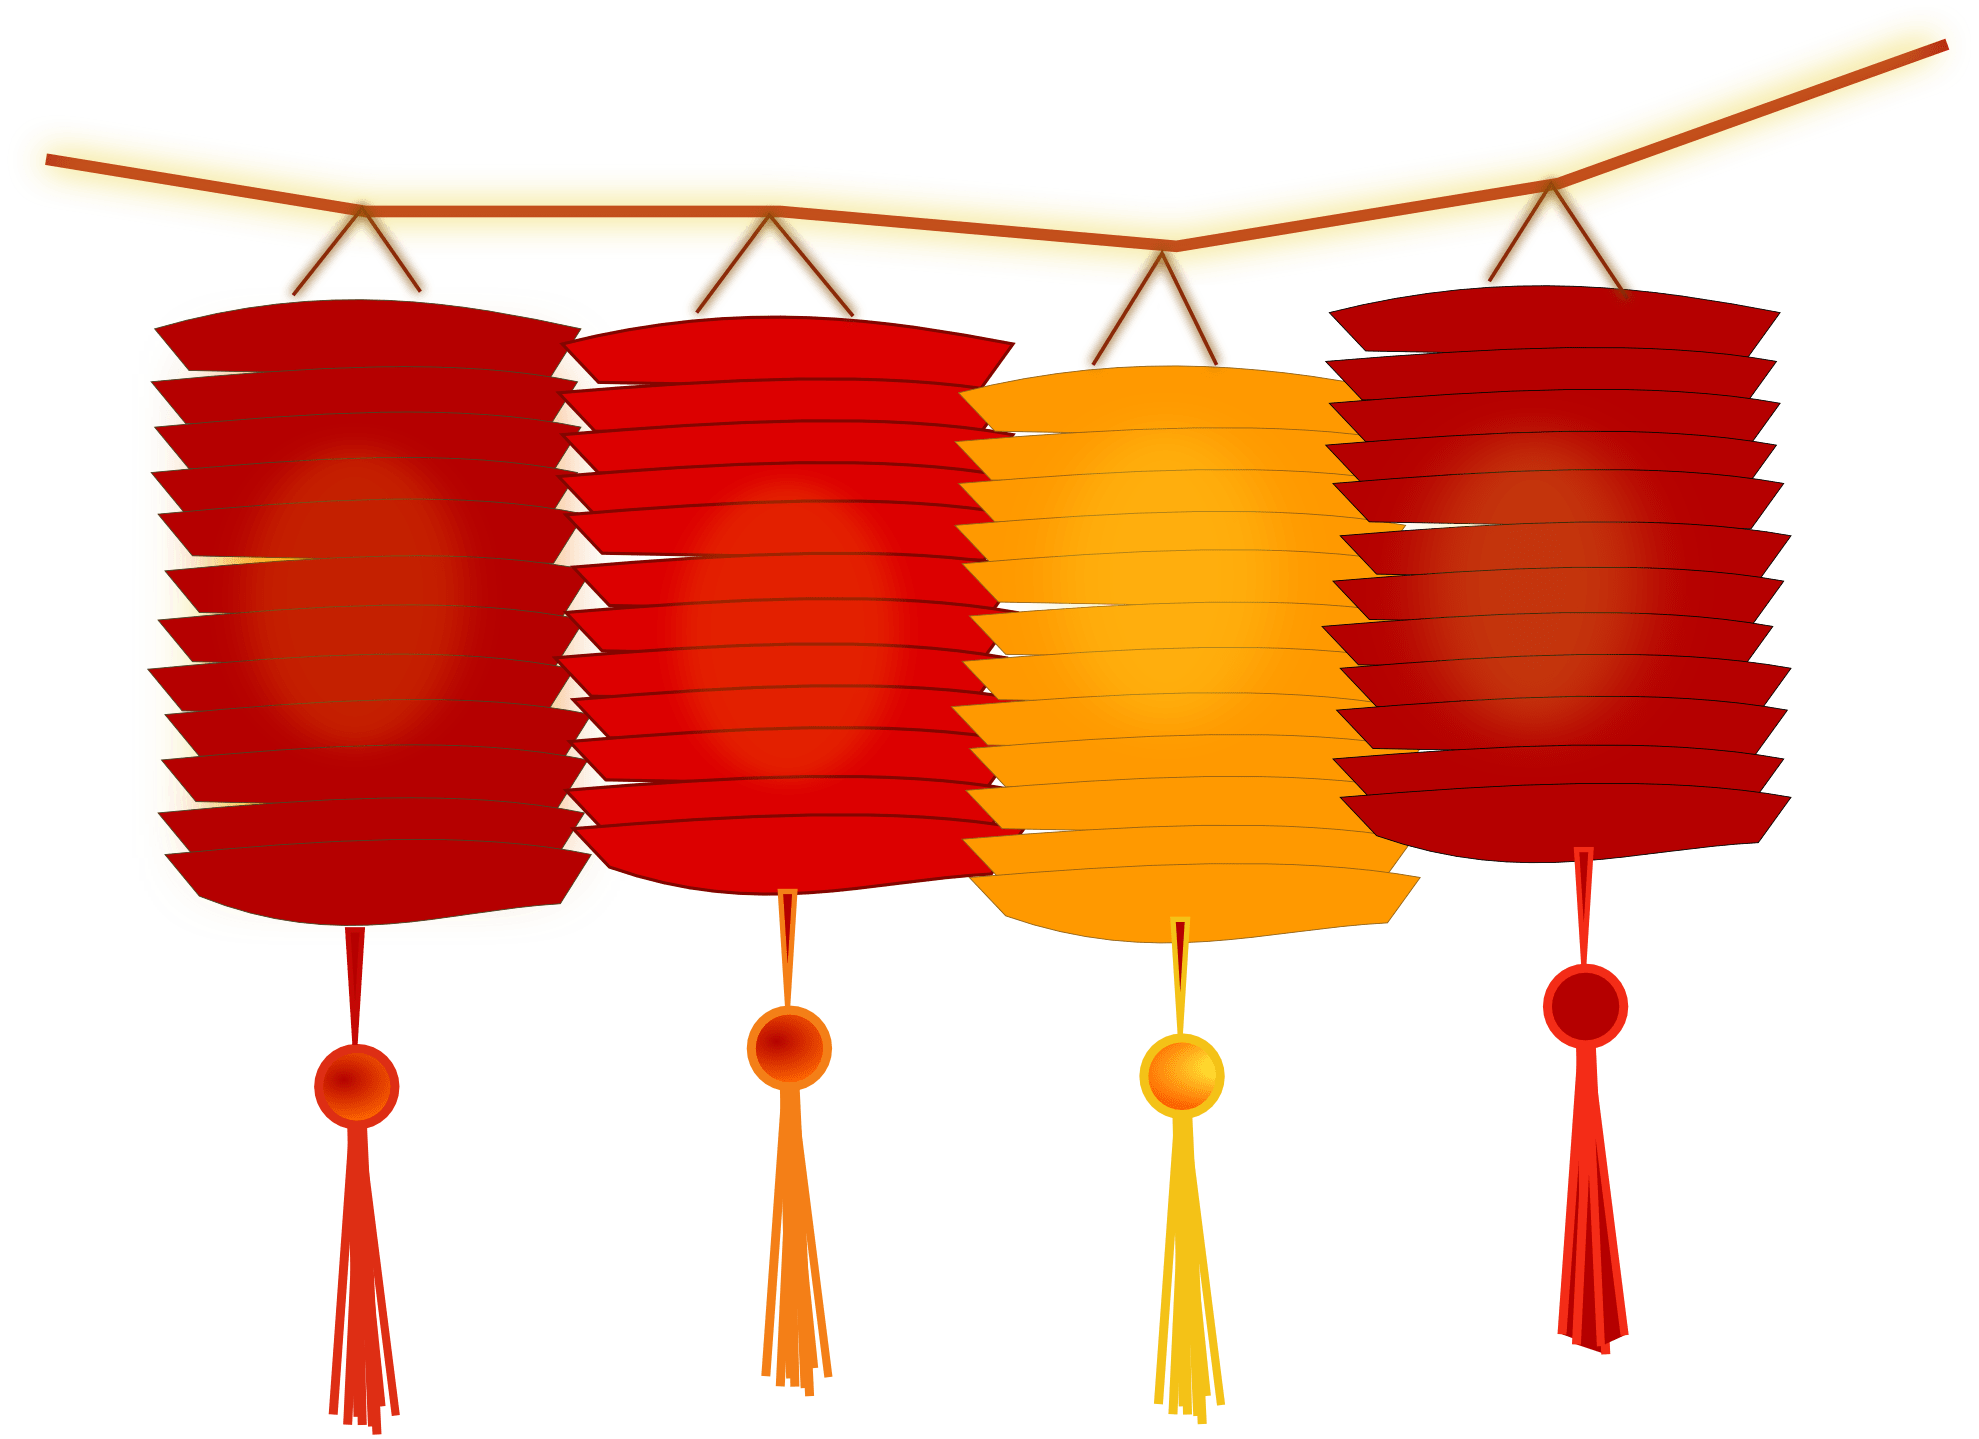 Lanterns For Chinese New Year Transparent Png Stickpng